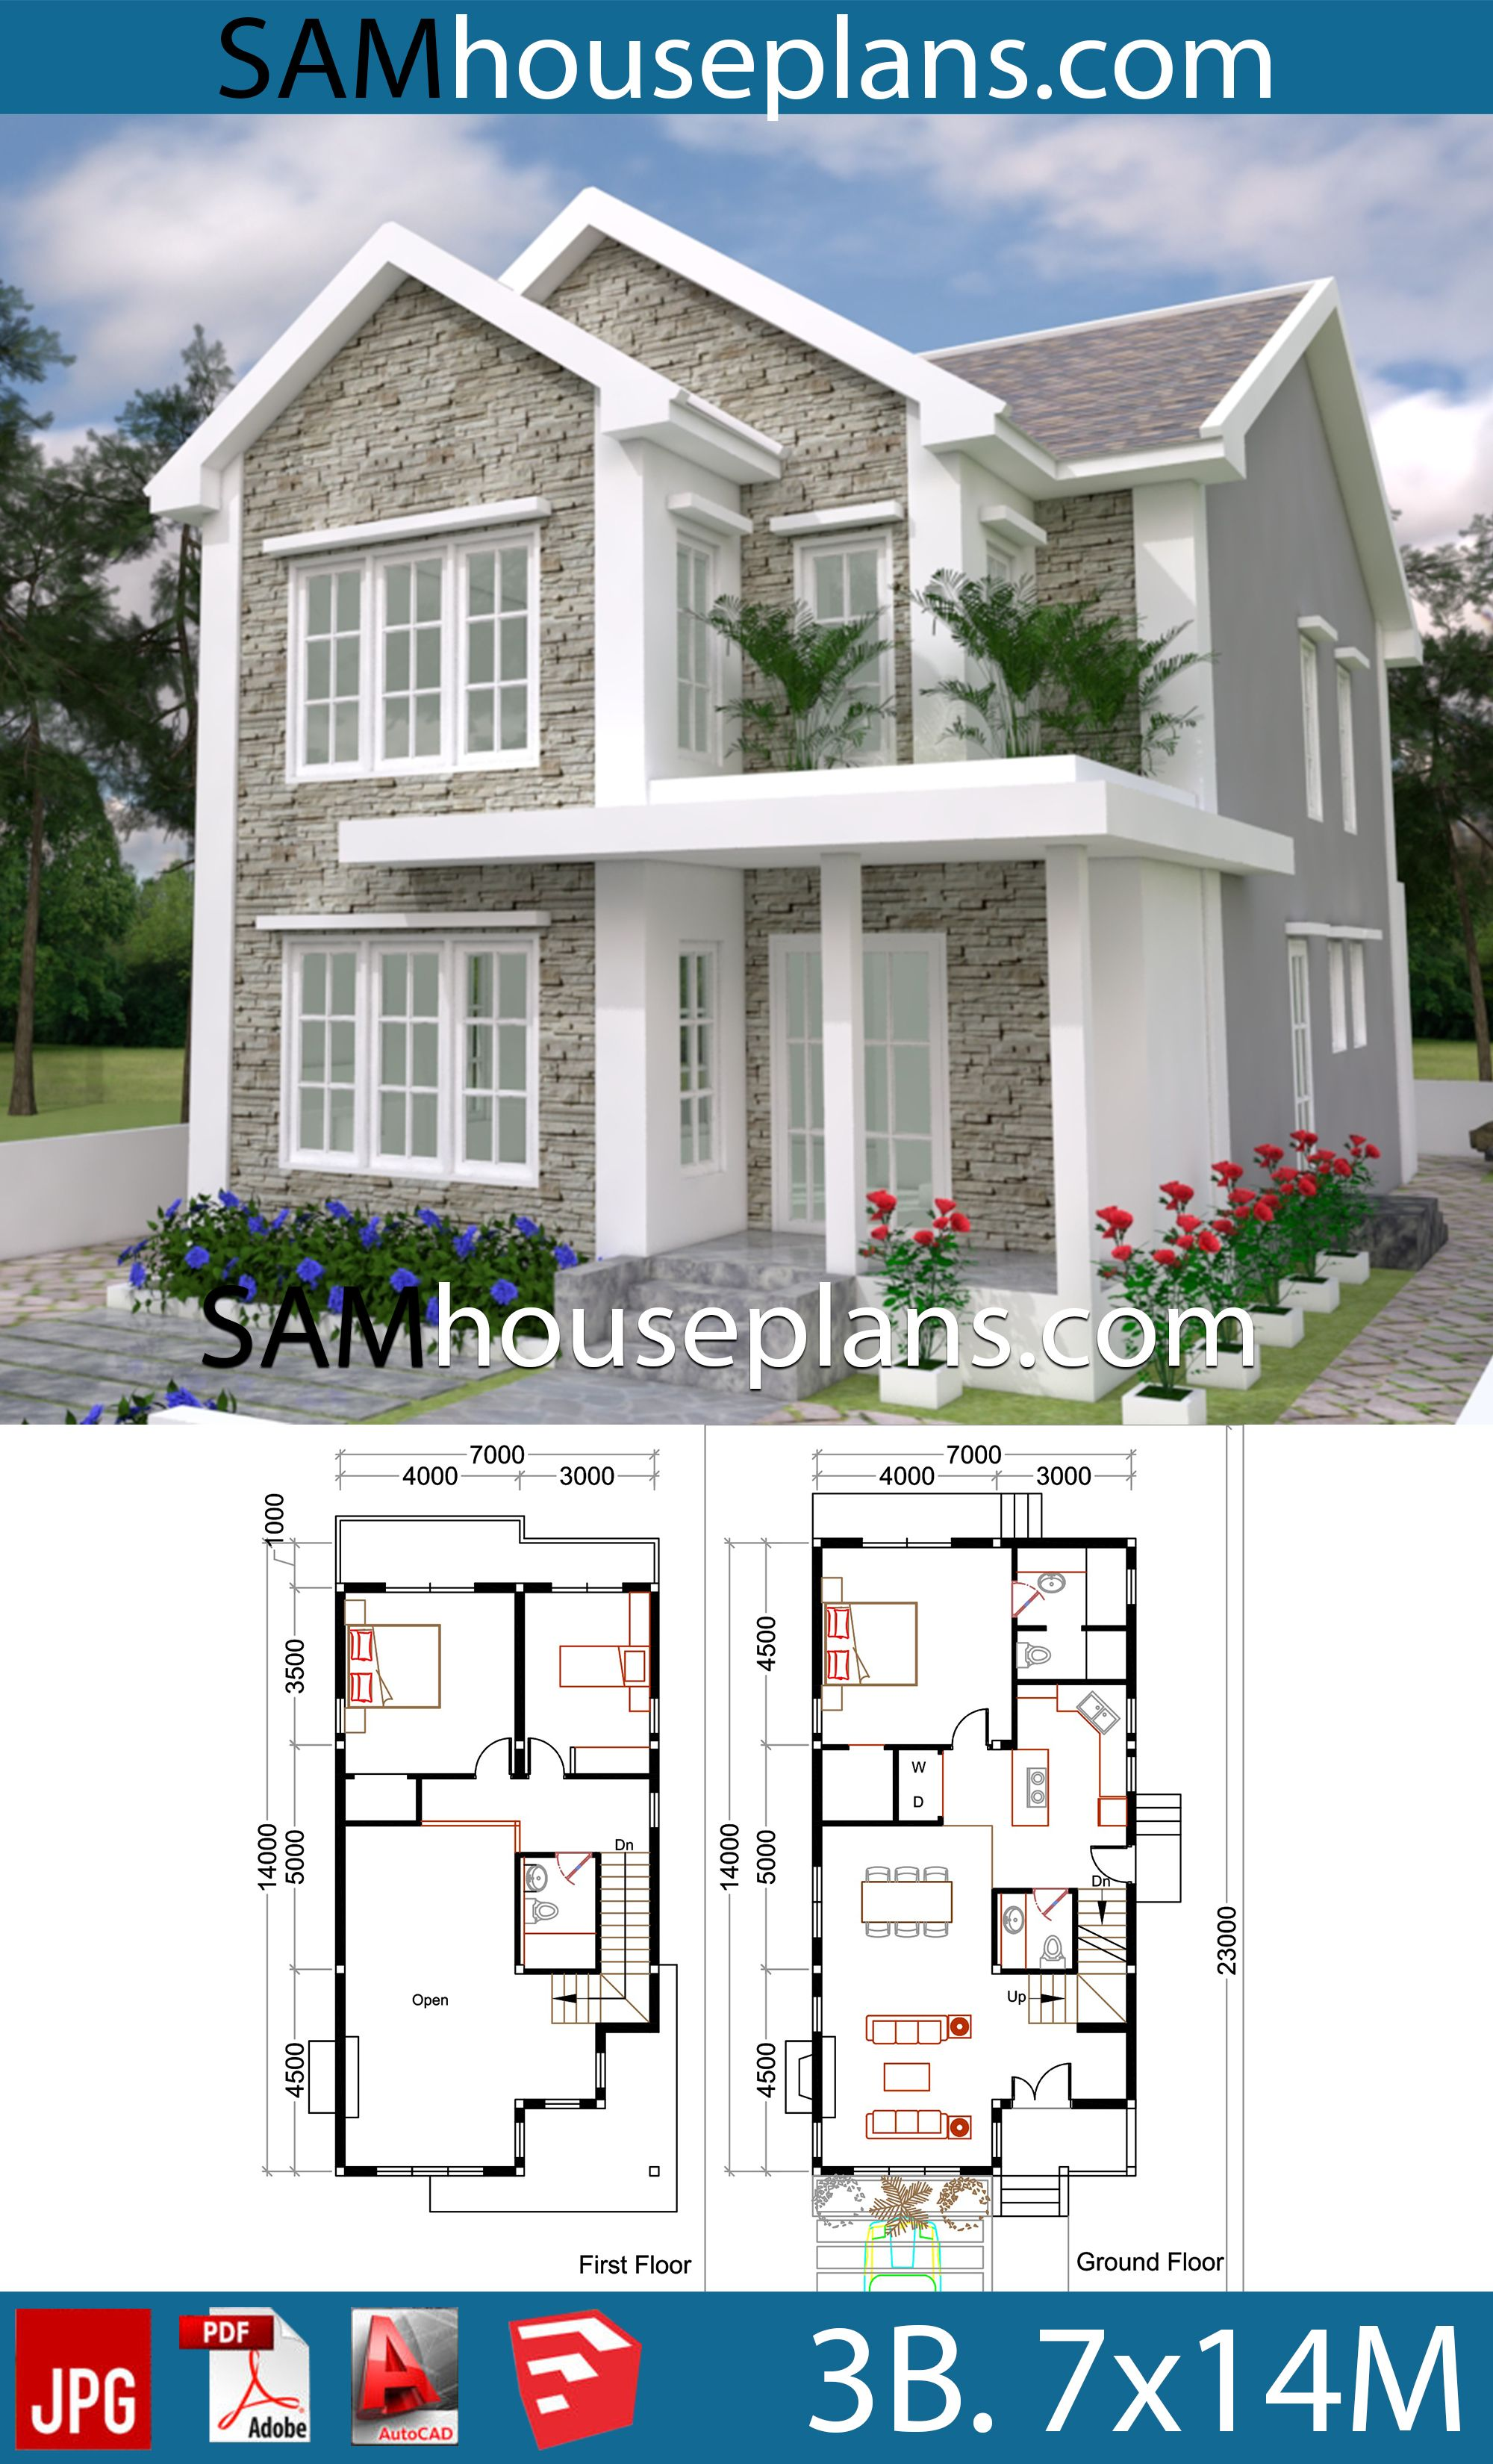 House Plans 7x14 With 3 Bedrooms Sam House Plans House Plans Model House Plan Condo Floor Plans